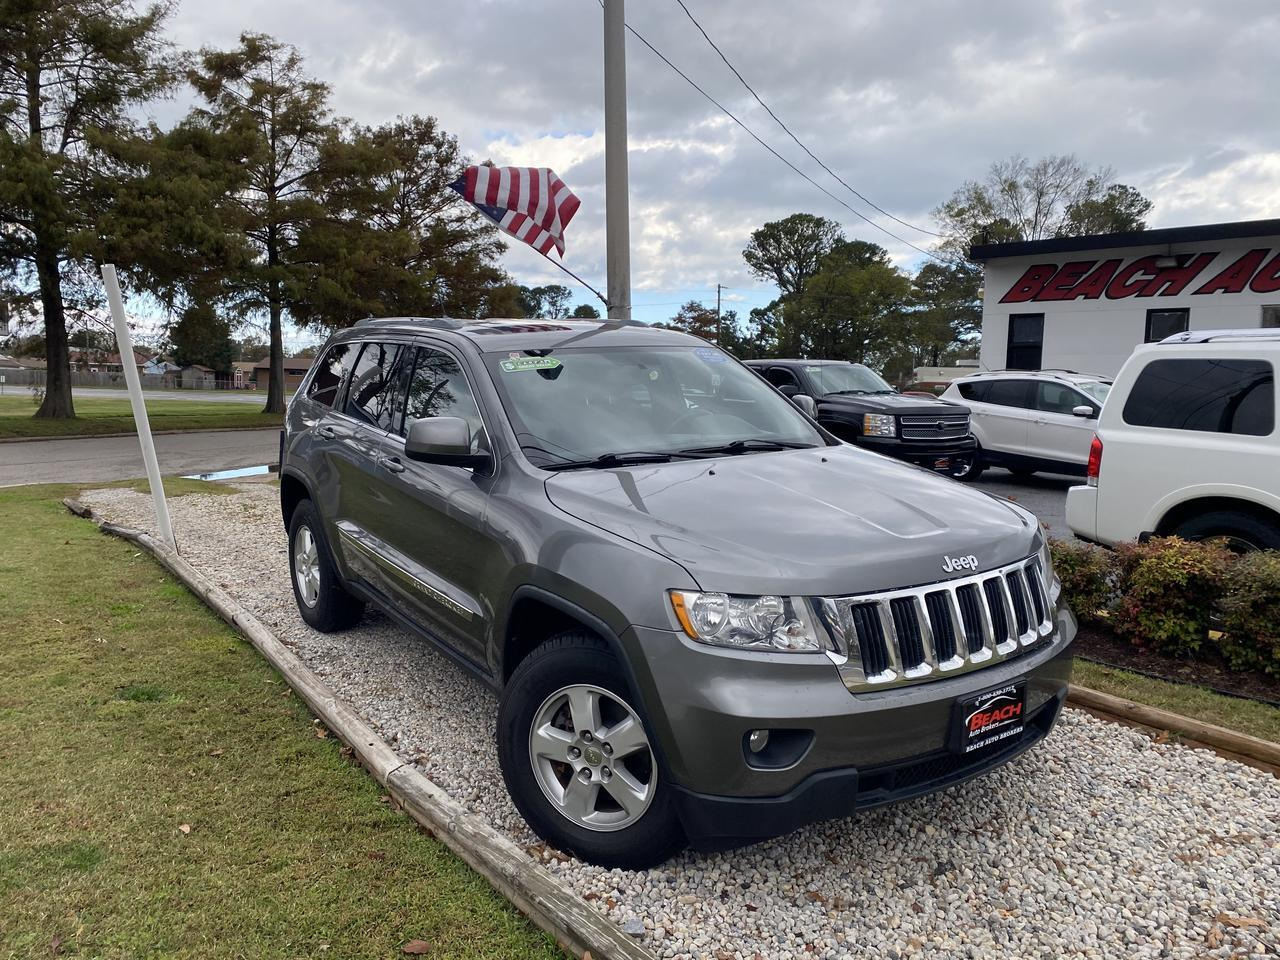 2012 JEEP GRAND CHEROKEE LAREDO 4X4, WARRANTY, AUX/USB PORT, POWER SEATS, CRUISE CONTROL, A/C, 1 OWNER! Norfolk VA